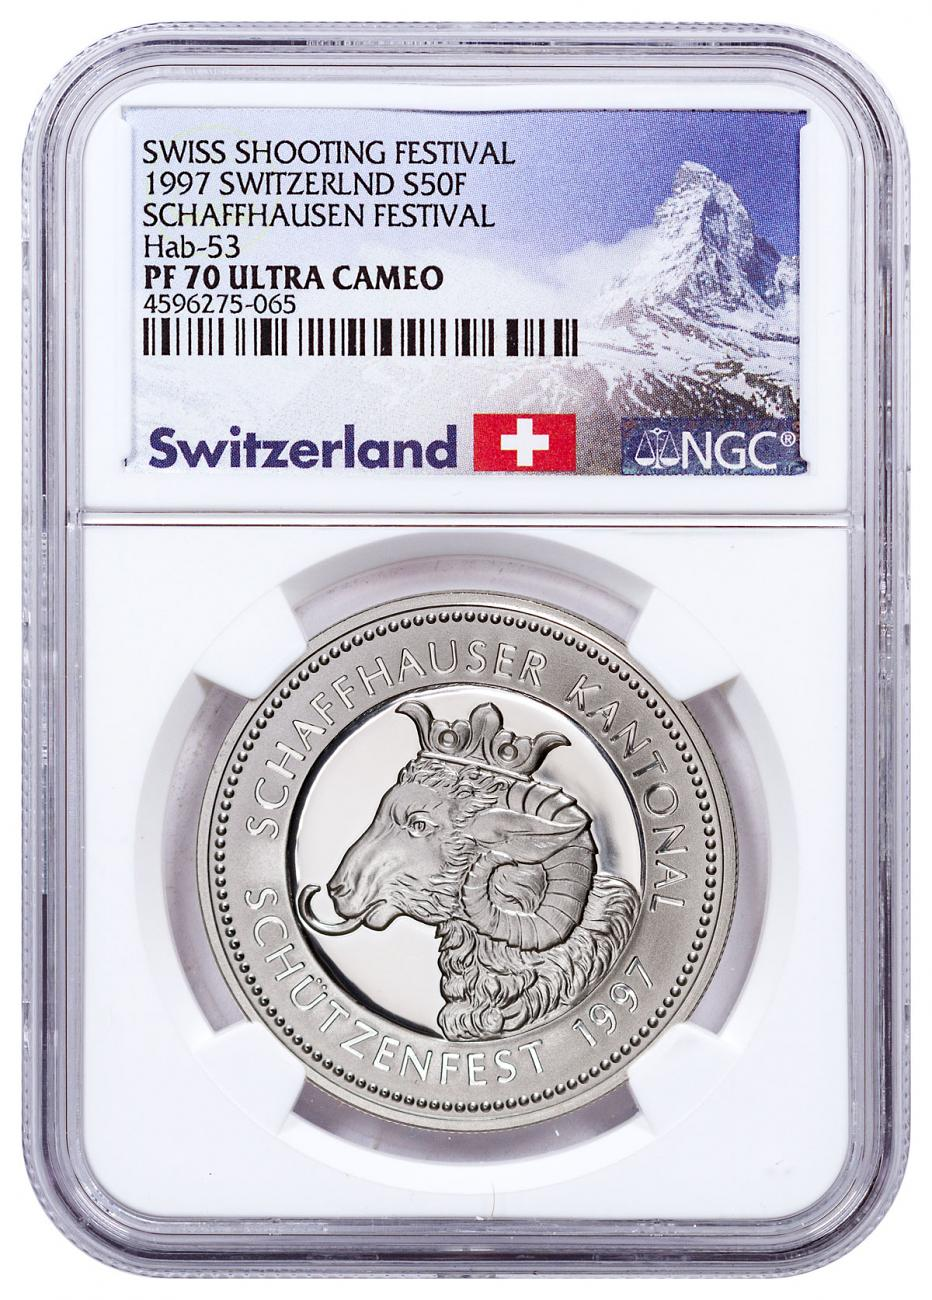 1997 Switzerland Shooting Festival Thaler - Schaffhausen Silver Proof Fr.50 Coin NGC PF70 UC Exclusive Switzerland Label